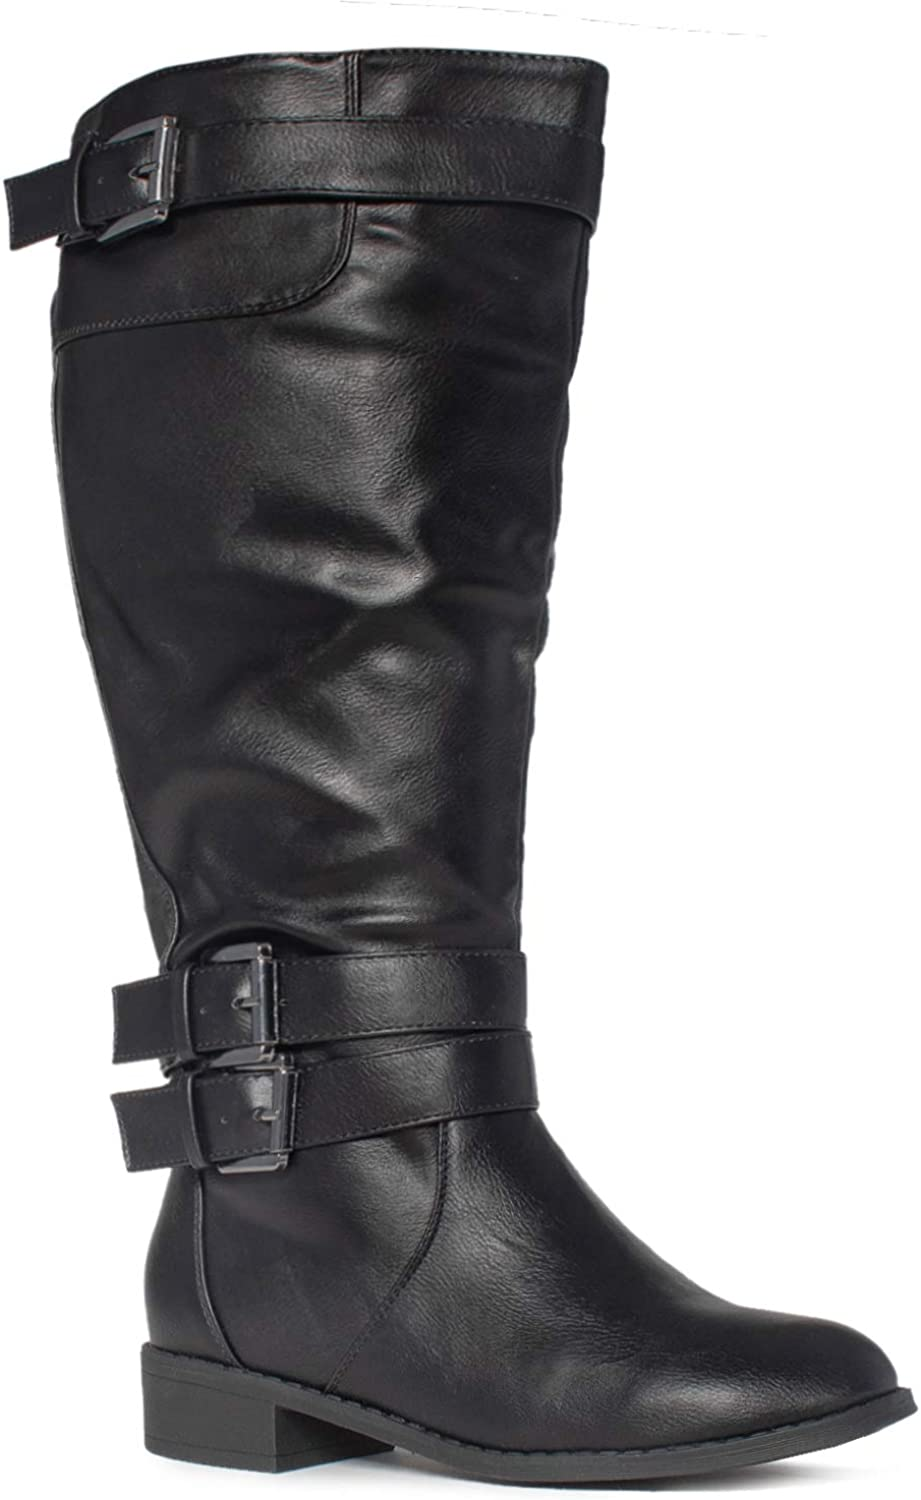 ROF Women's Studded Quilted Leatherette Buckle Round Toe Motorcycle Boots